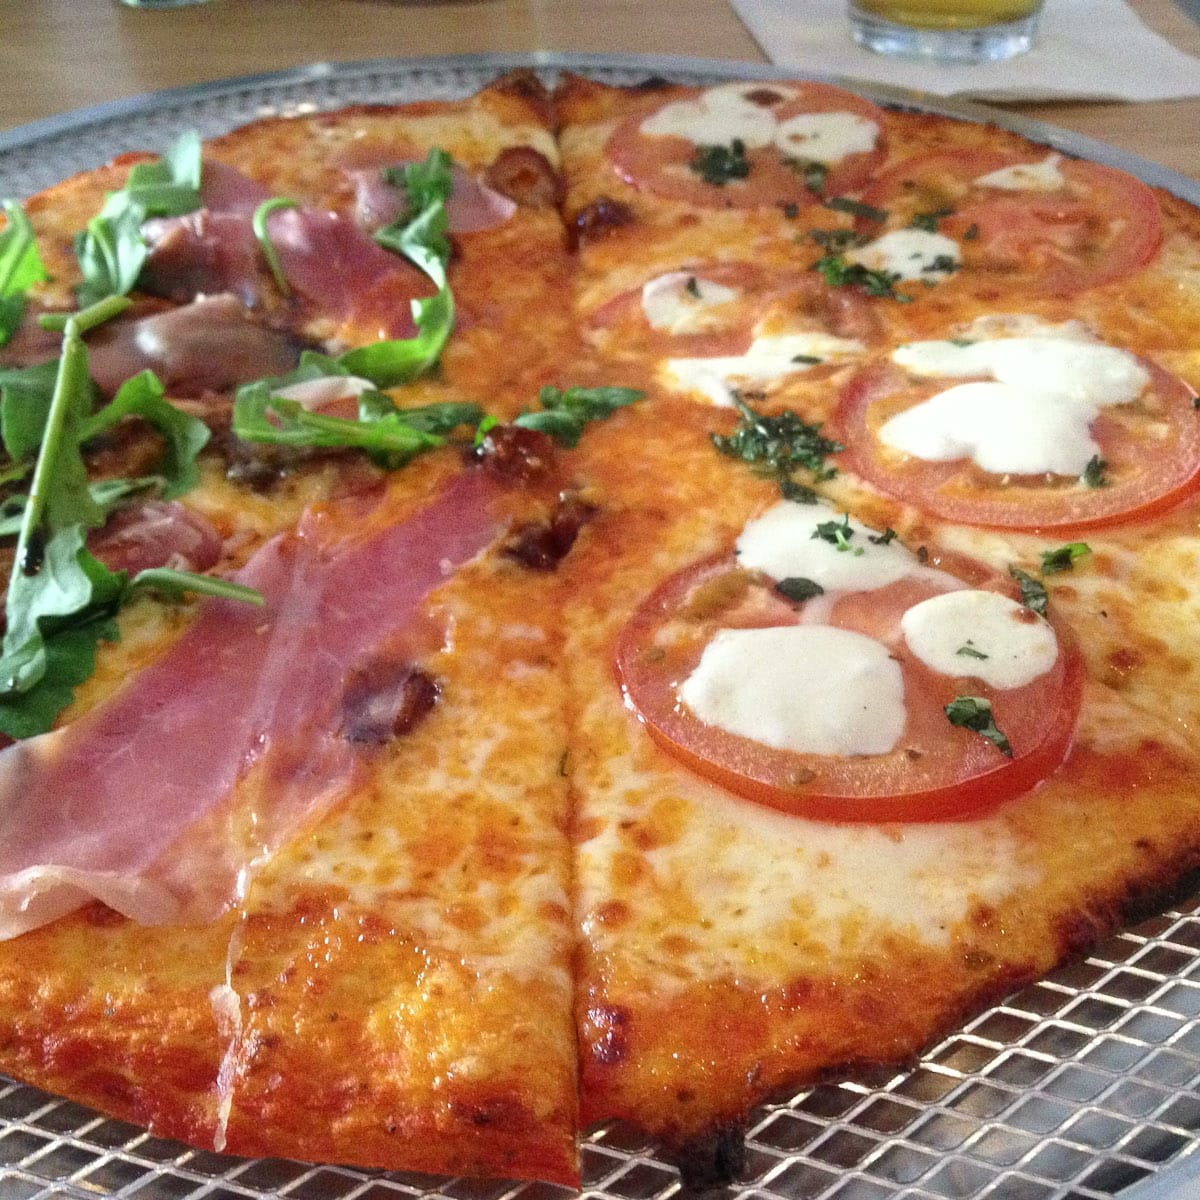 5 Jupiter Pizza & Waffle Co. August 2013 pizza